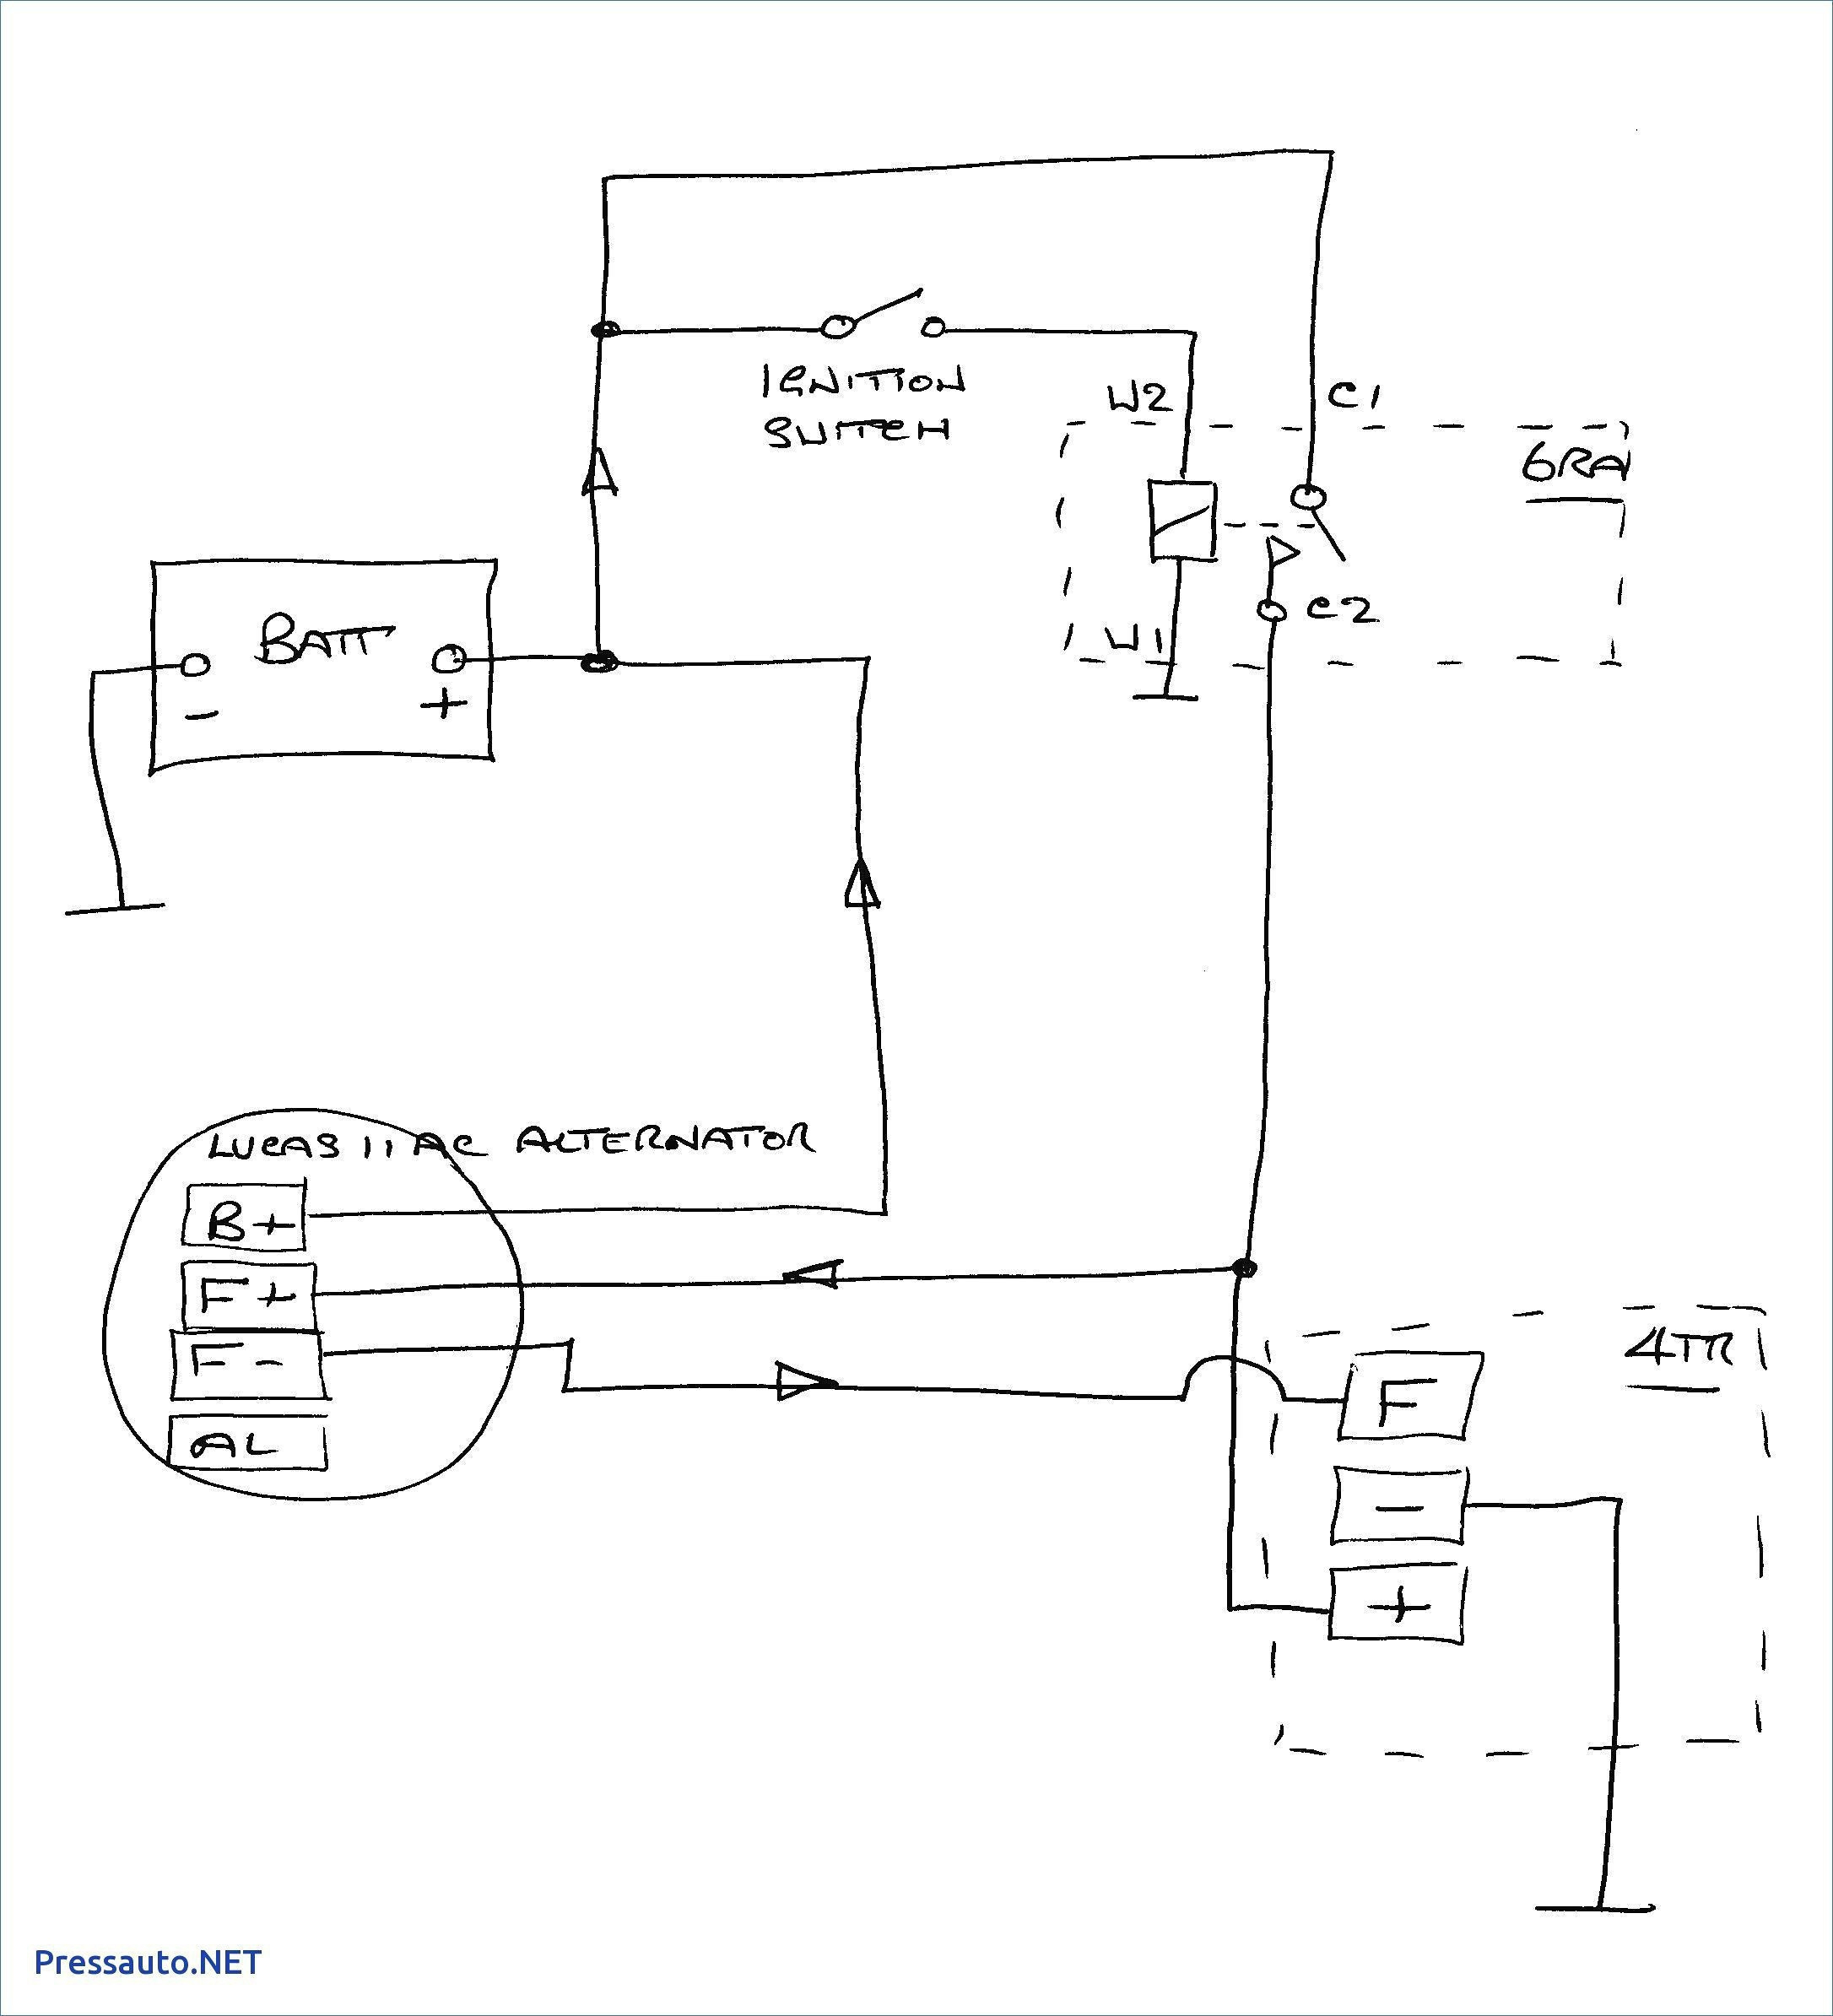 Diagram I Have A Series 2a Land Rover And I Want To Fit An Alternator To It It Is Currently A 12v Neg Wiring Diagram Full Version Hd Quality Wiring Diagram